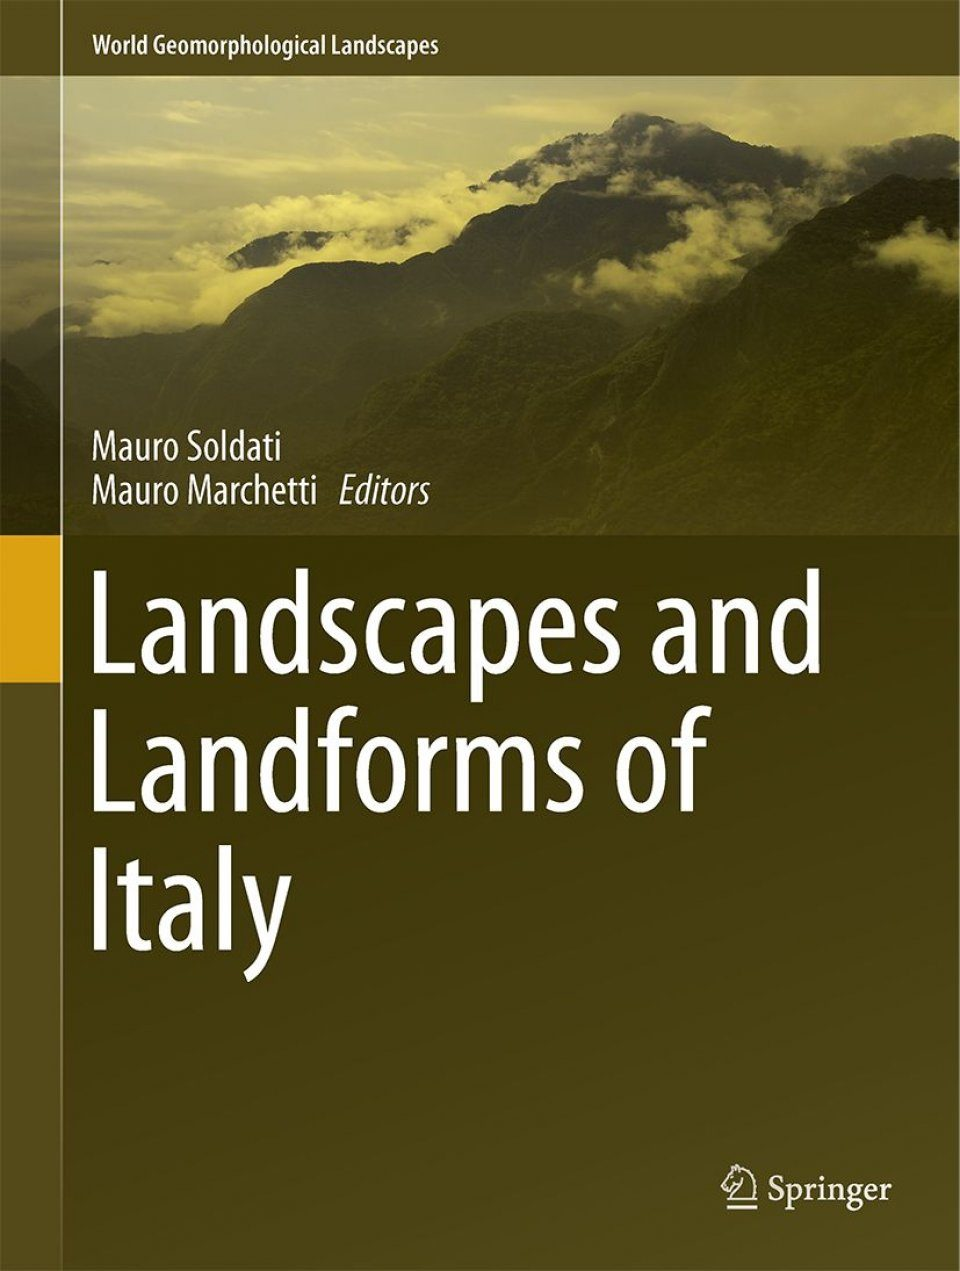 Landscapes and Landforms of Italy